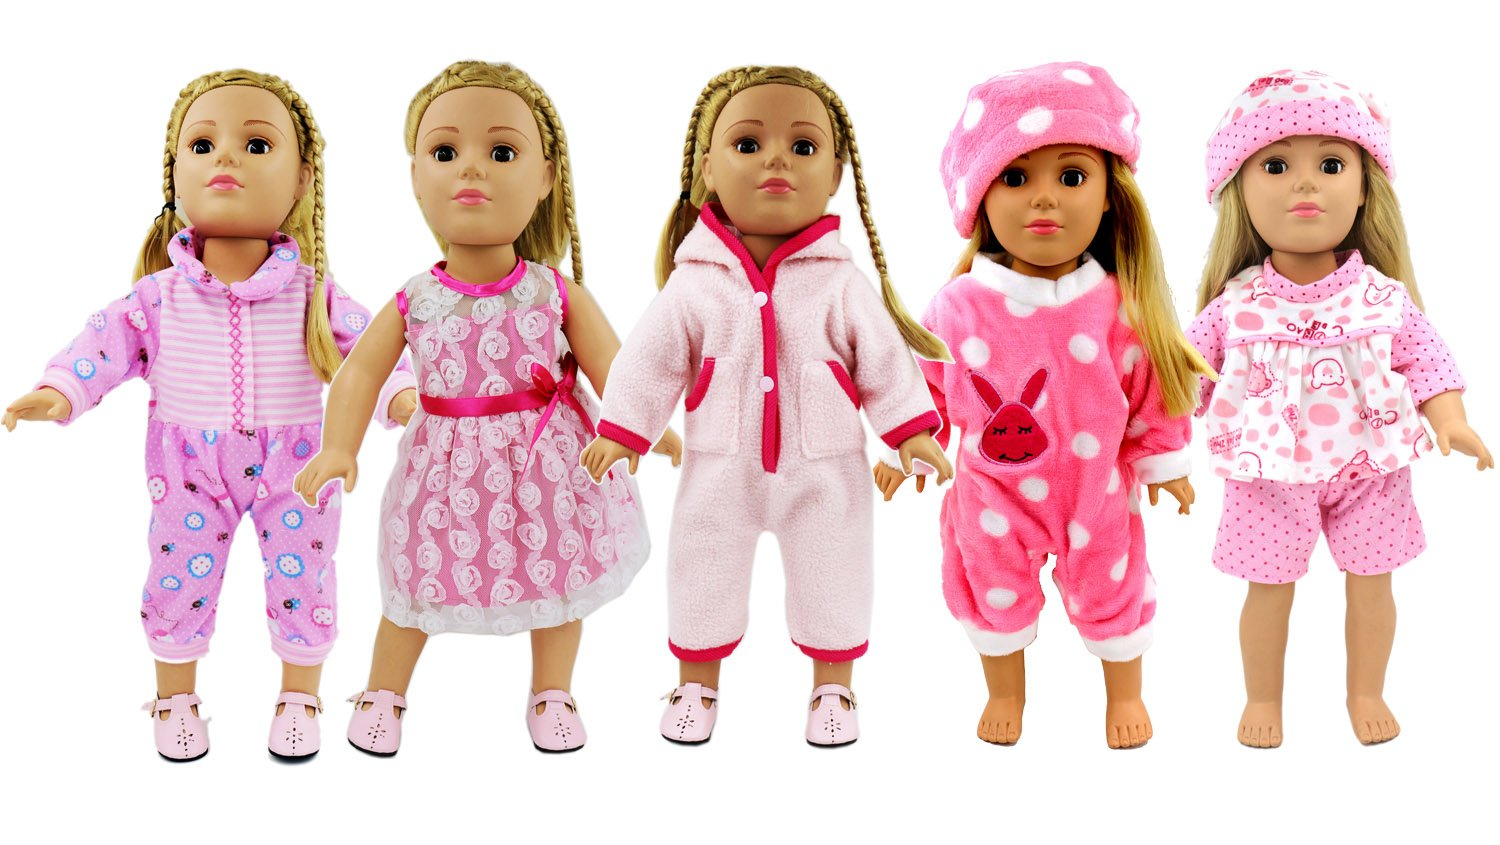 AOFUL 5 Lots Bitty Baby Doll Dress Clothes, Fashion Bunny Pink Pajamas Romper Skirt Outfits Fits 16-18'' inch American Girl Dolls Set of 5